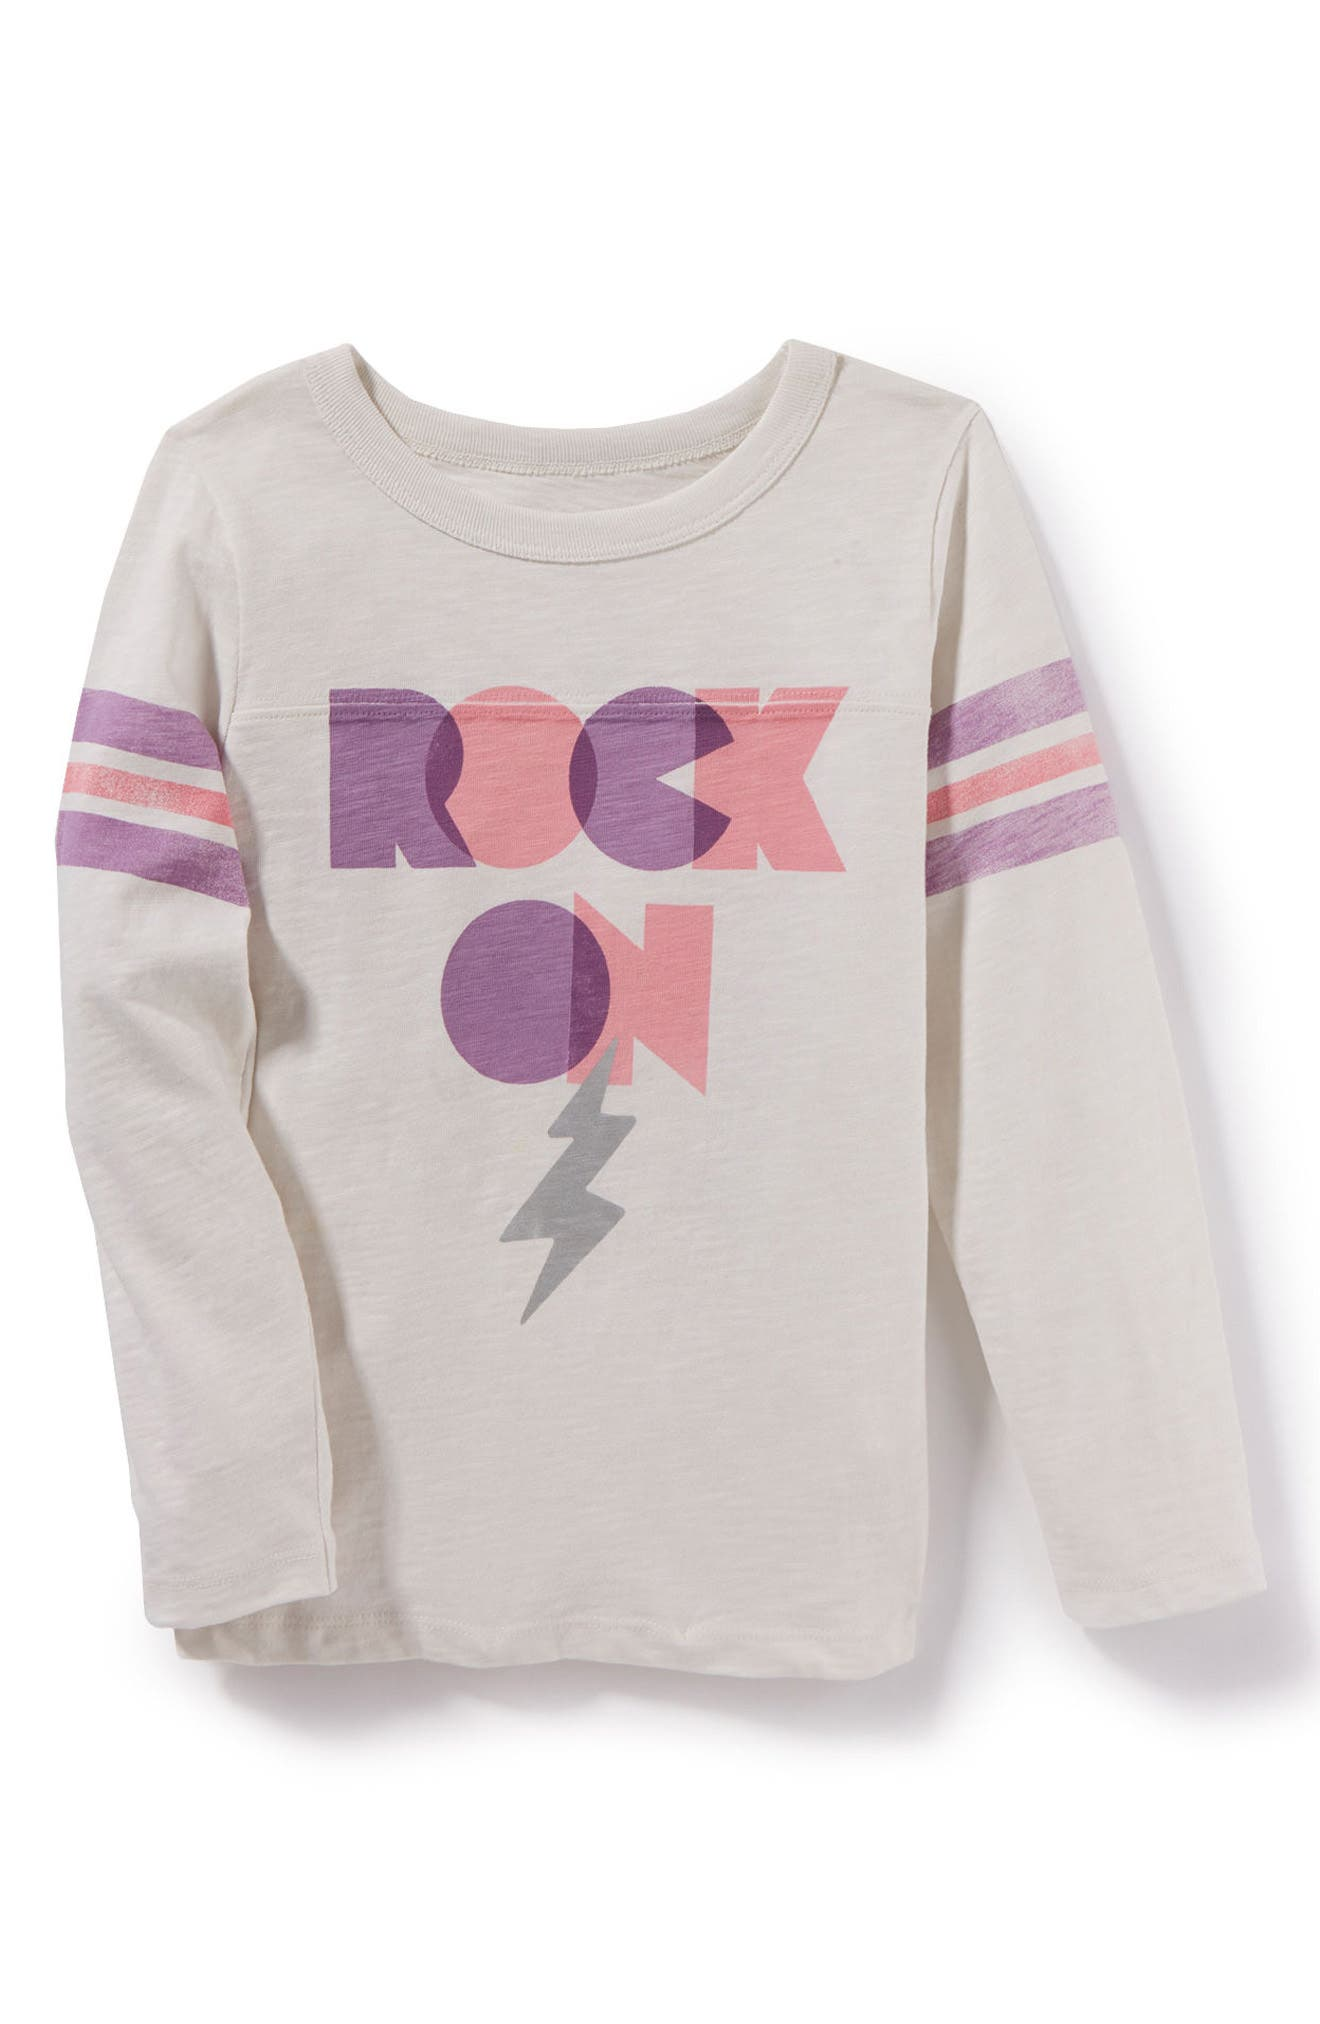 Rock On Graphic Tee,                         Main,                         color, 906